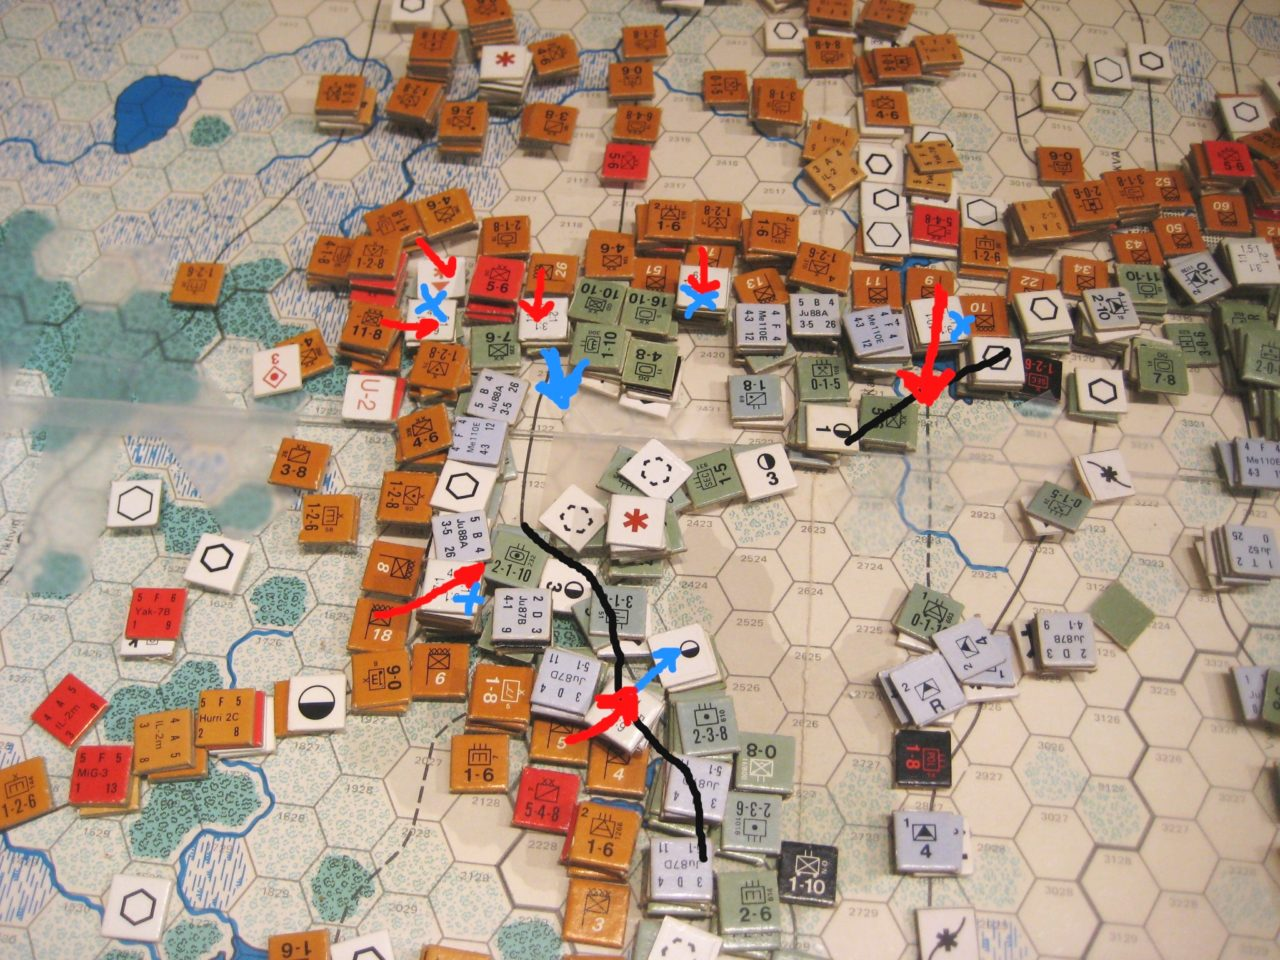 The Axis frontline gets pushed back north of Moscow